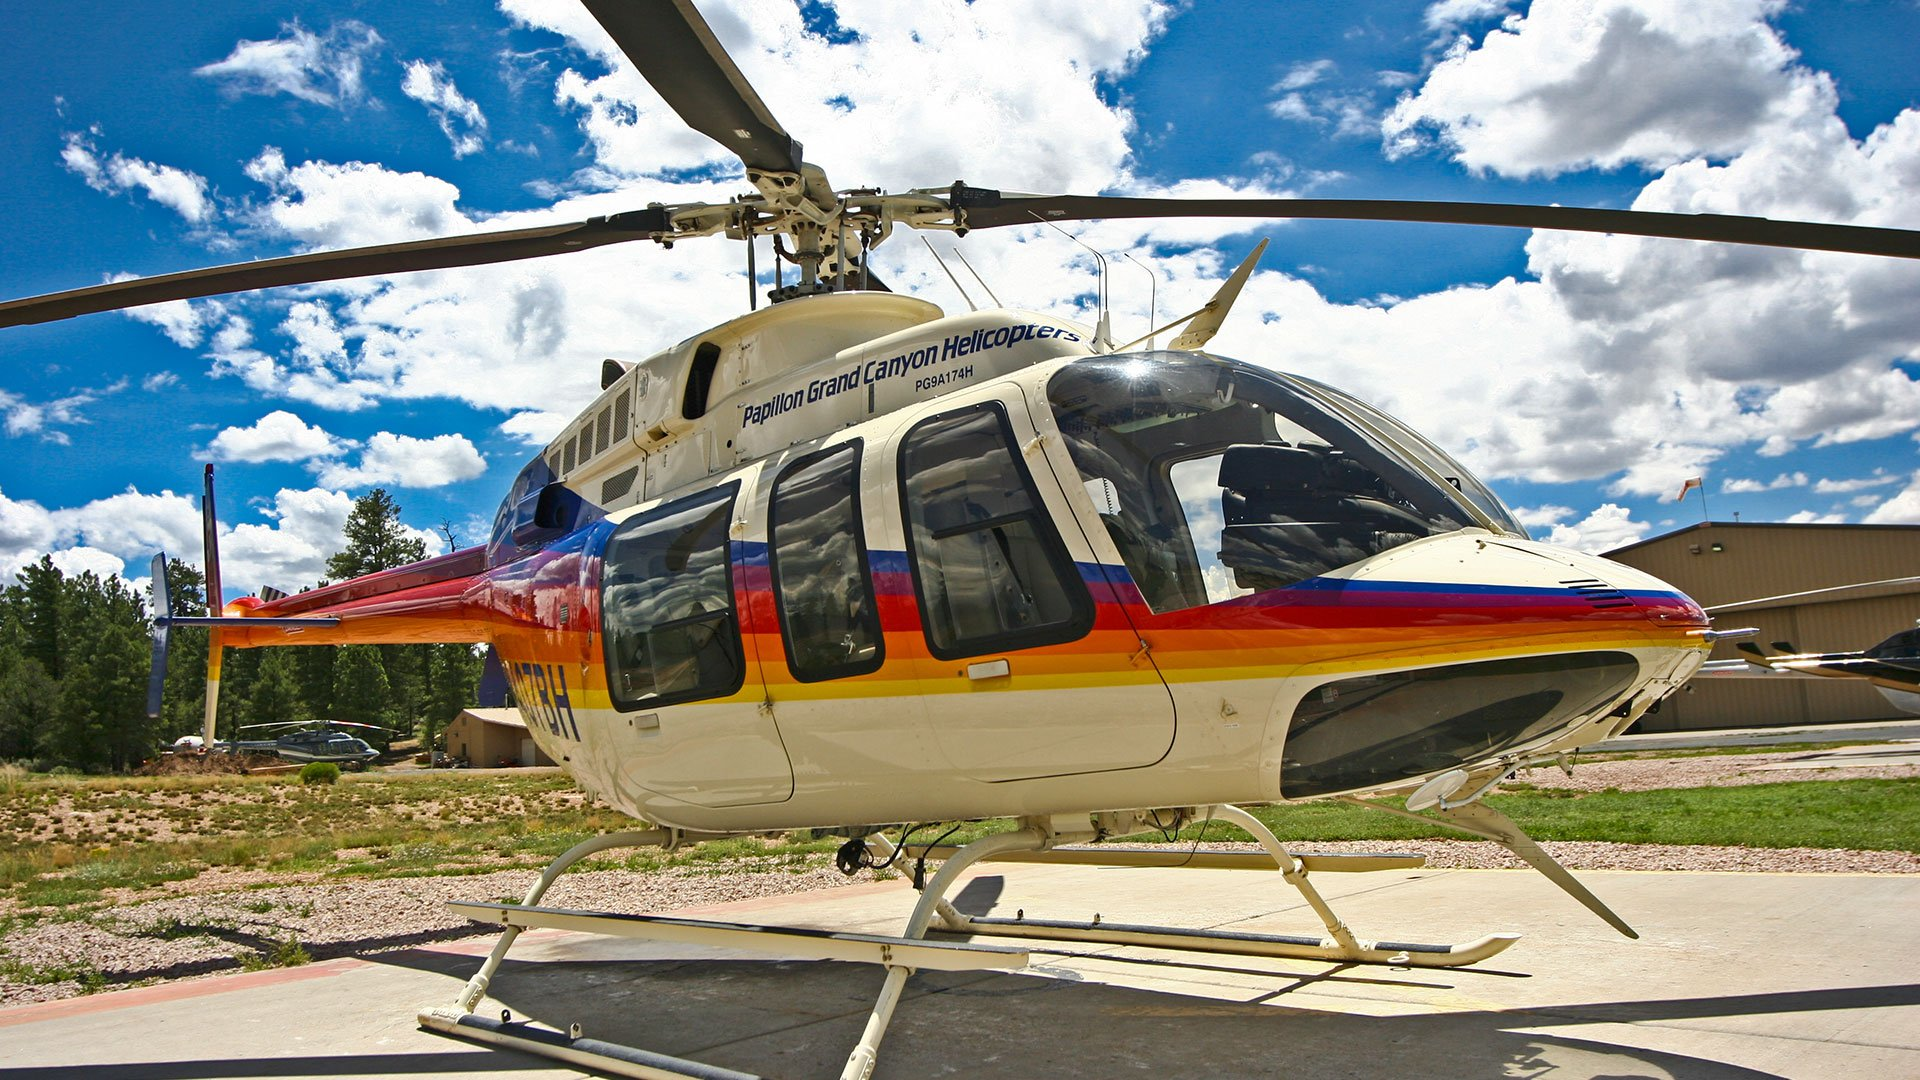 Tours From Phoenix And Sedona  Papillon Grand Canyon Helicopters